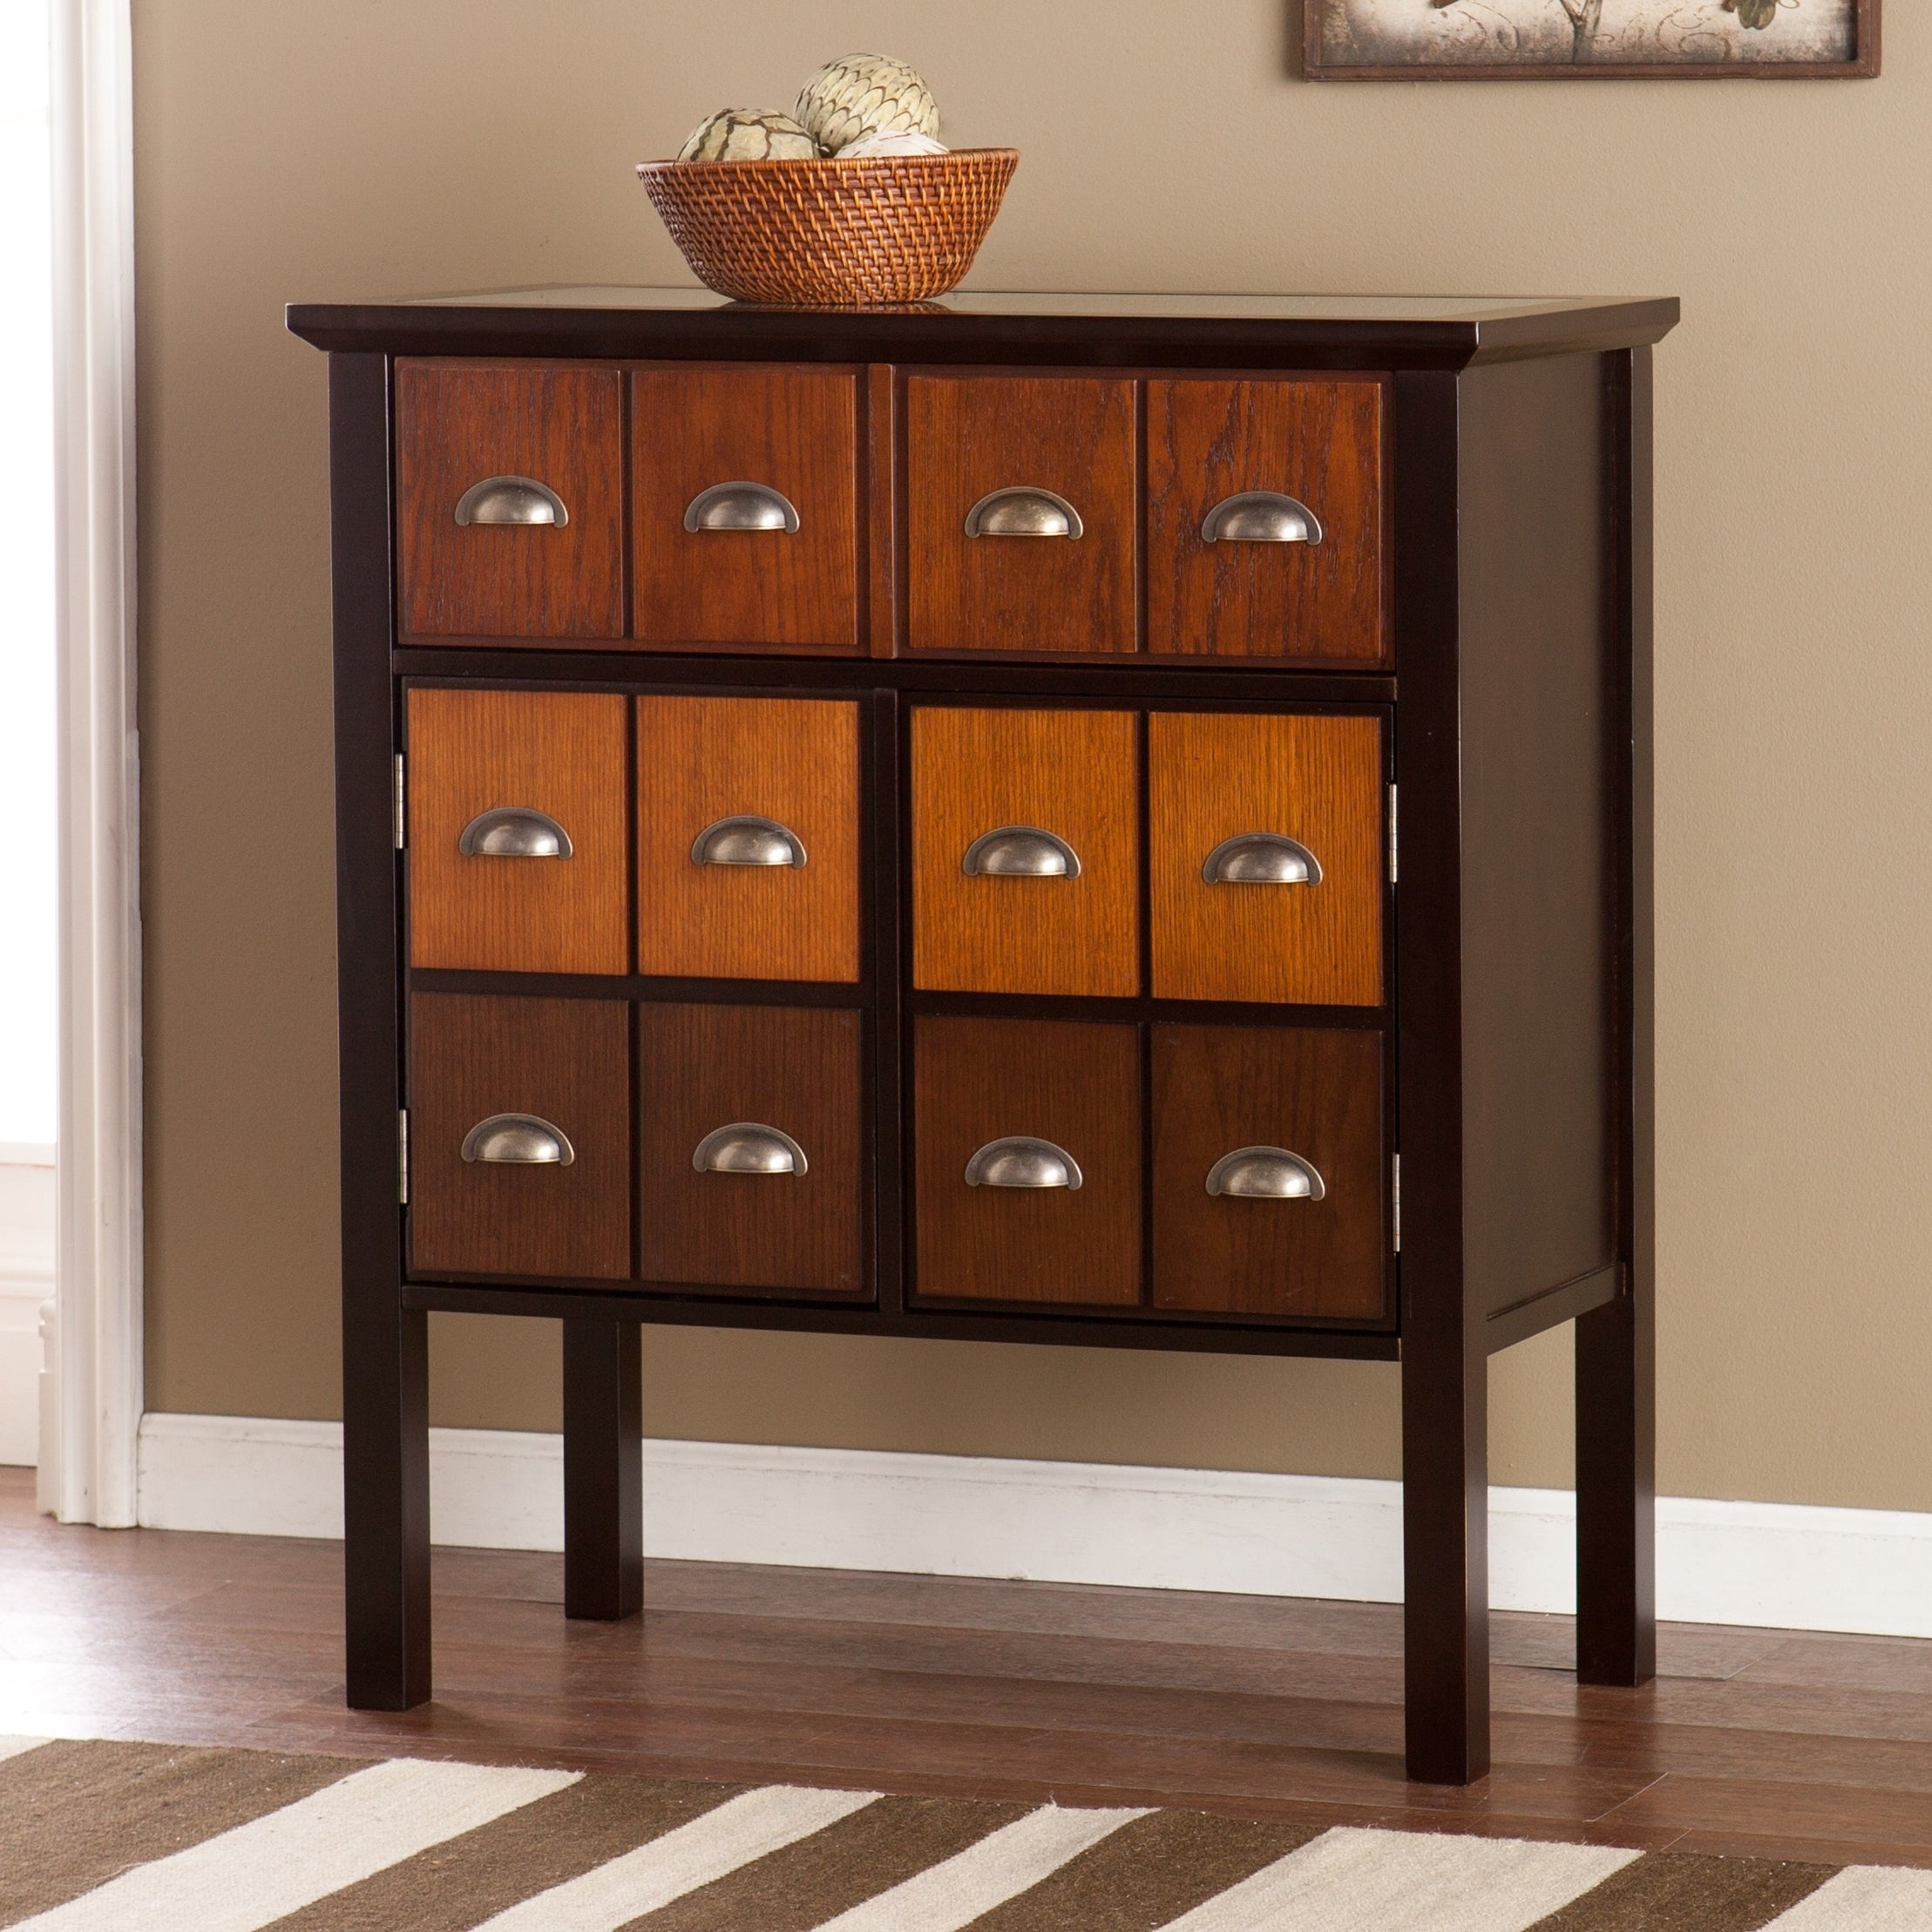 Harper Blvd Heloise Display Top Apothecary Cabinet (OS426...